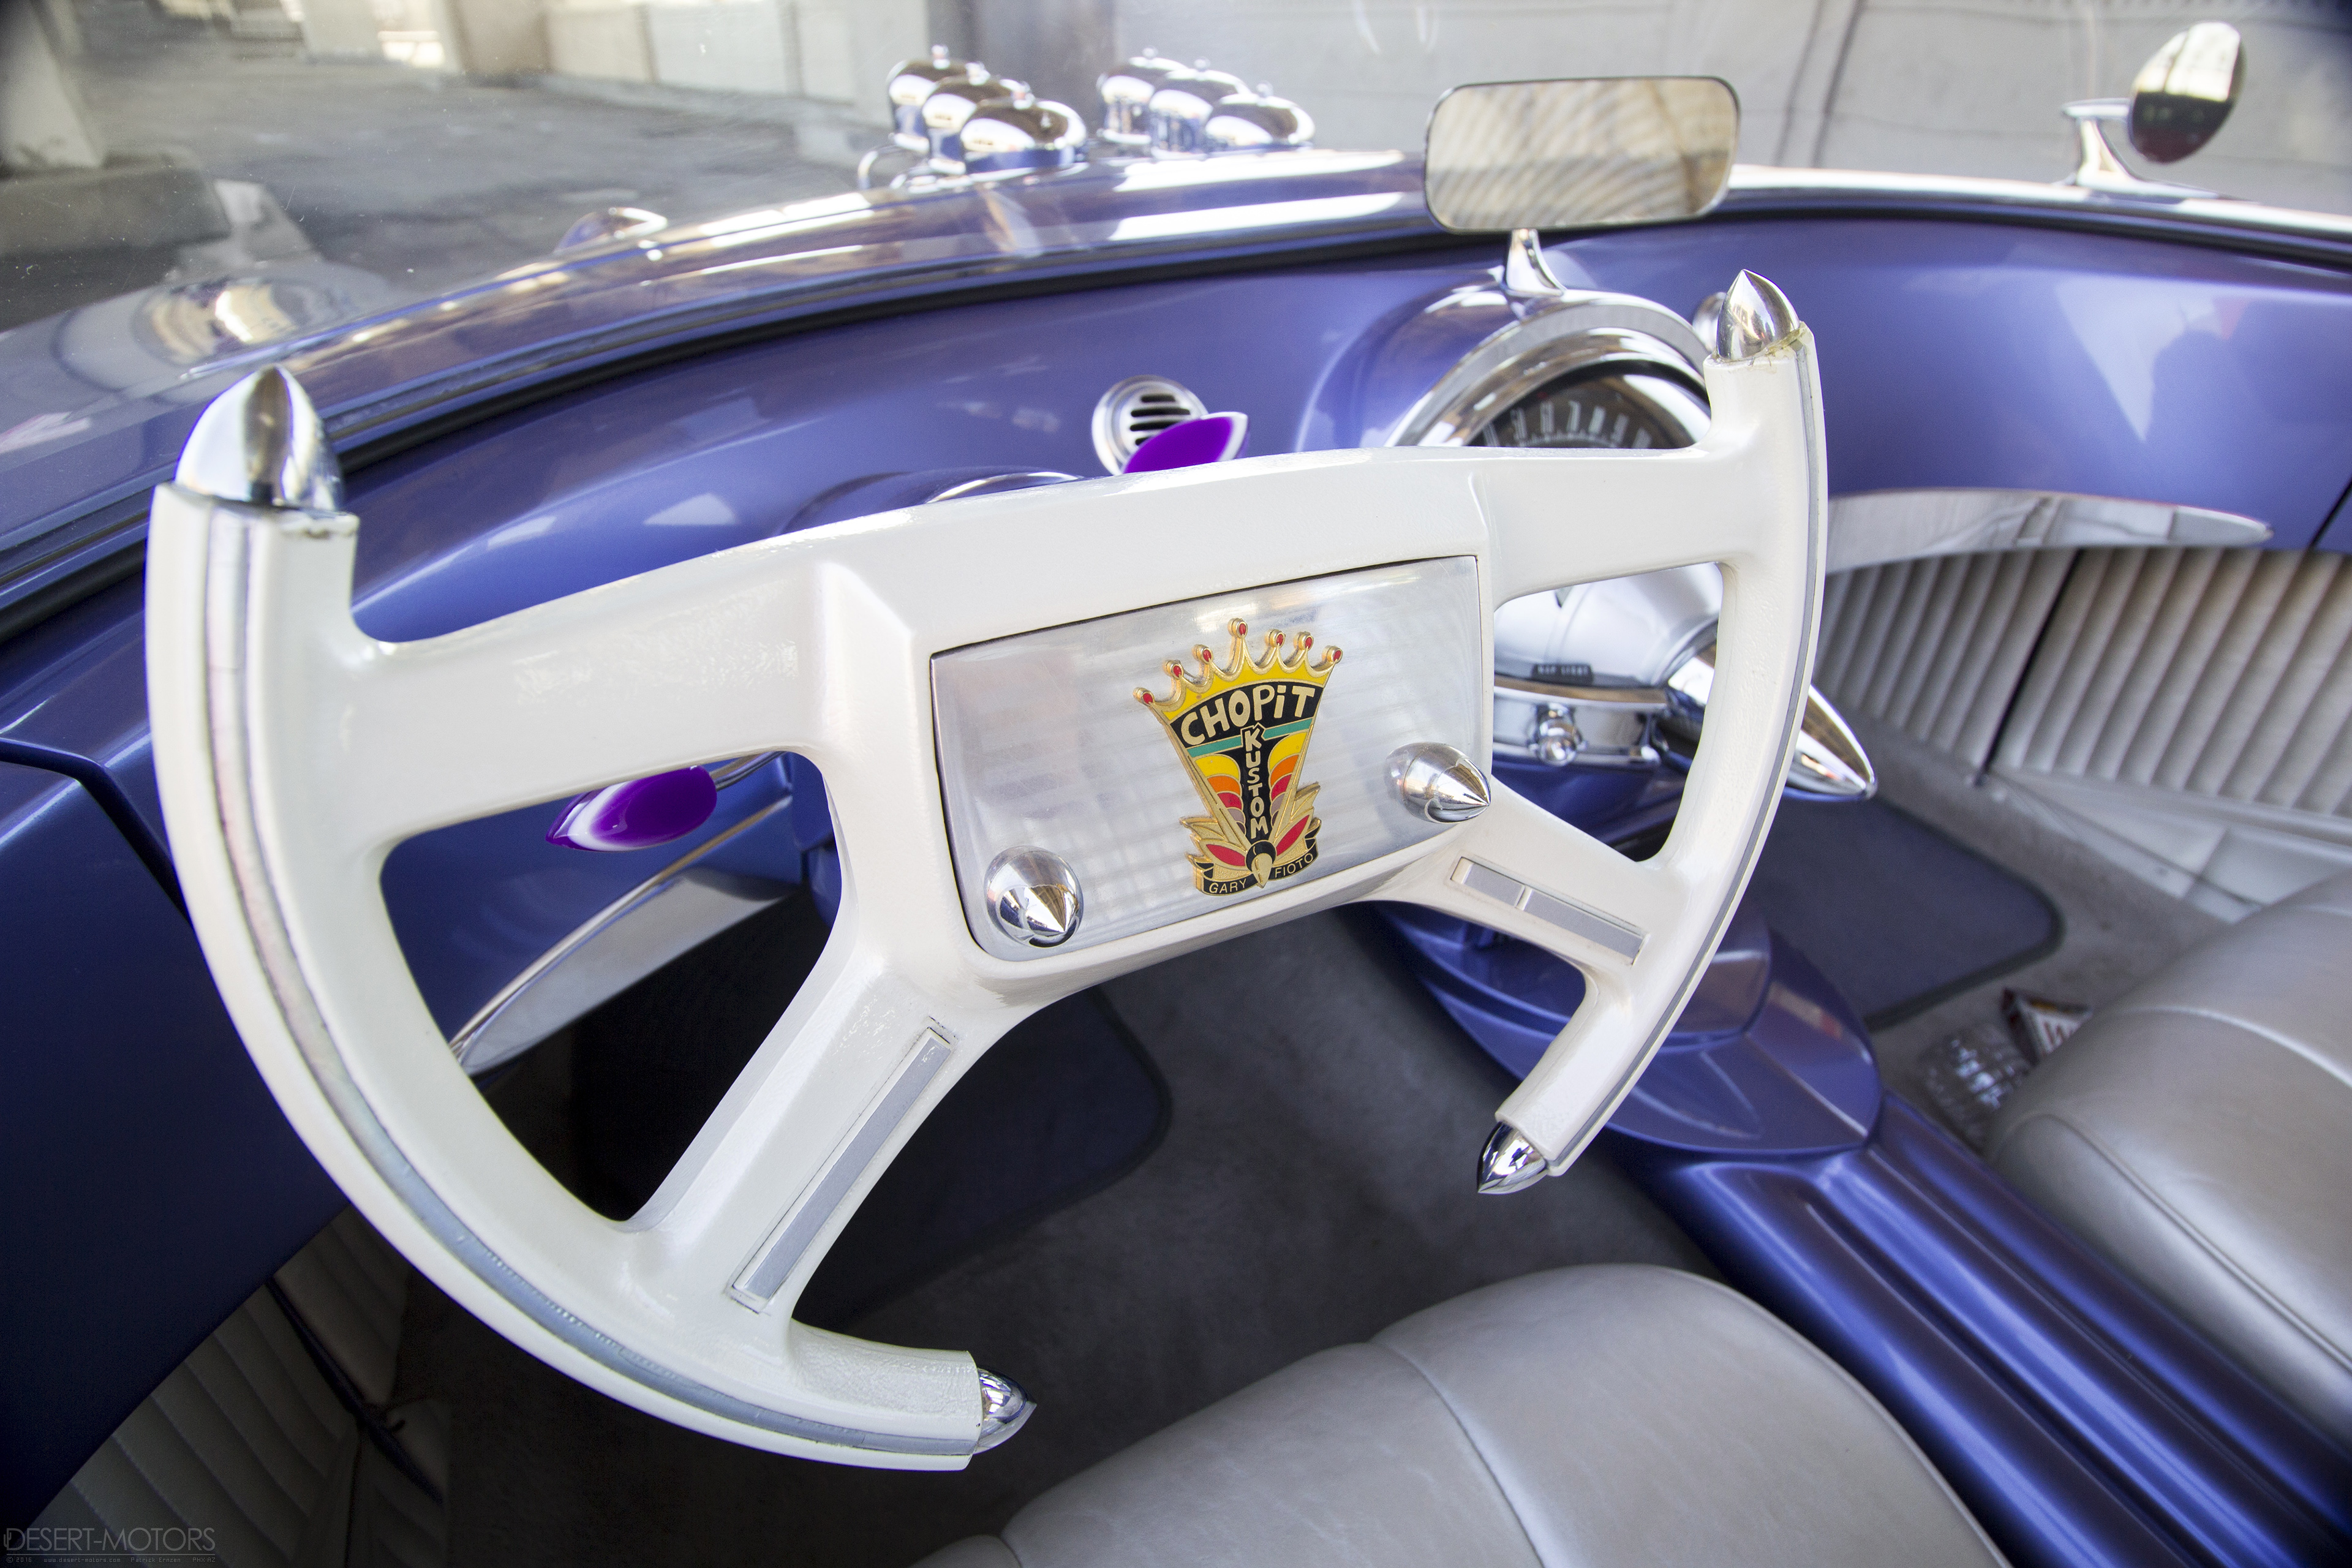 Beatnik Bubbletop, close-up on the steering wheel